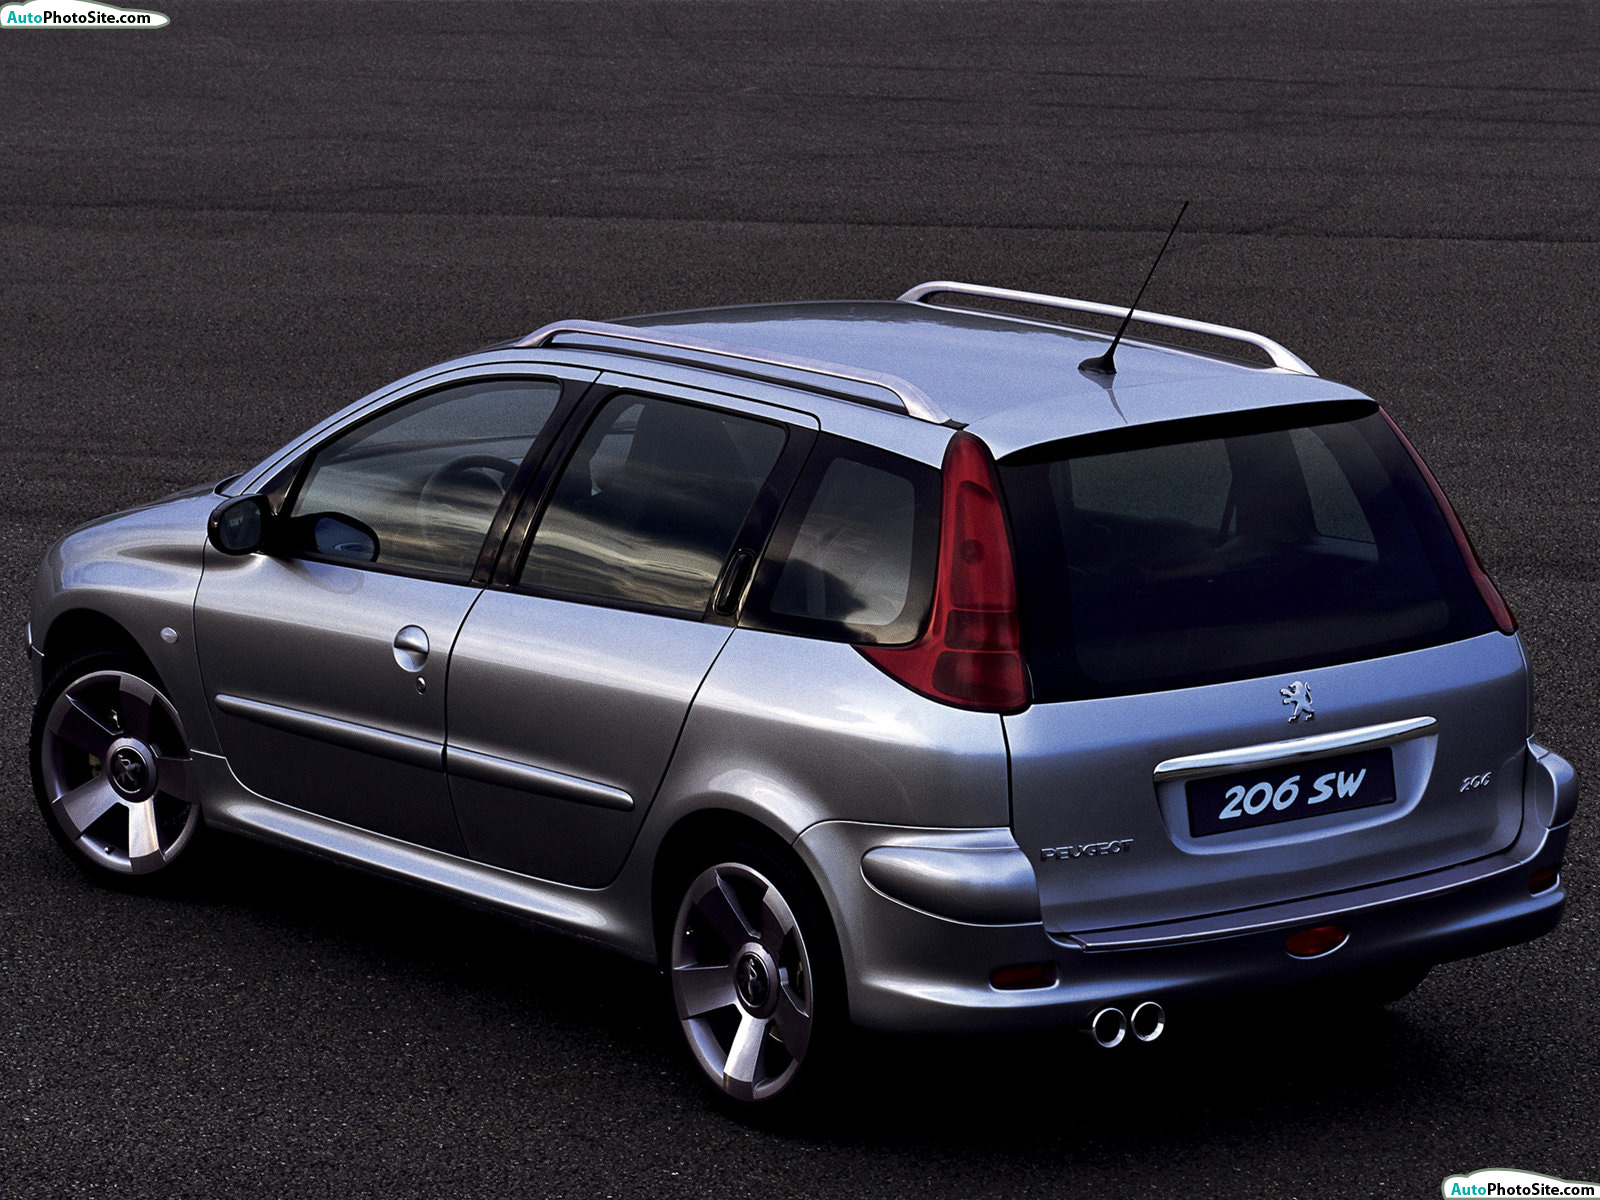 2010 peugeot 206 sw pictures information and specs auto. Black Bedroom Furniture Sets. Home Design Ideas